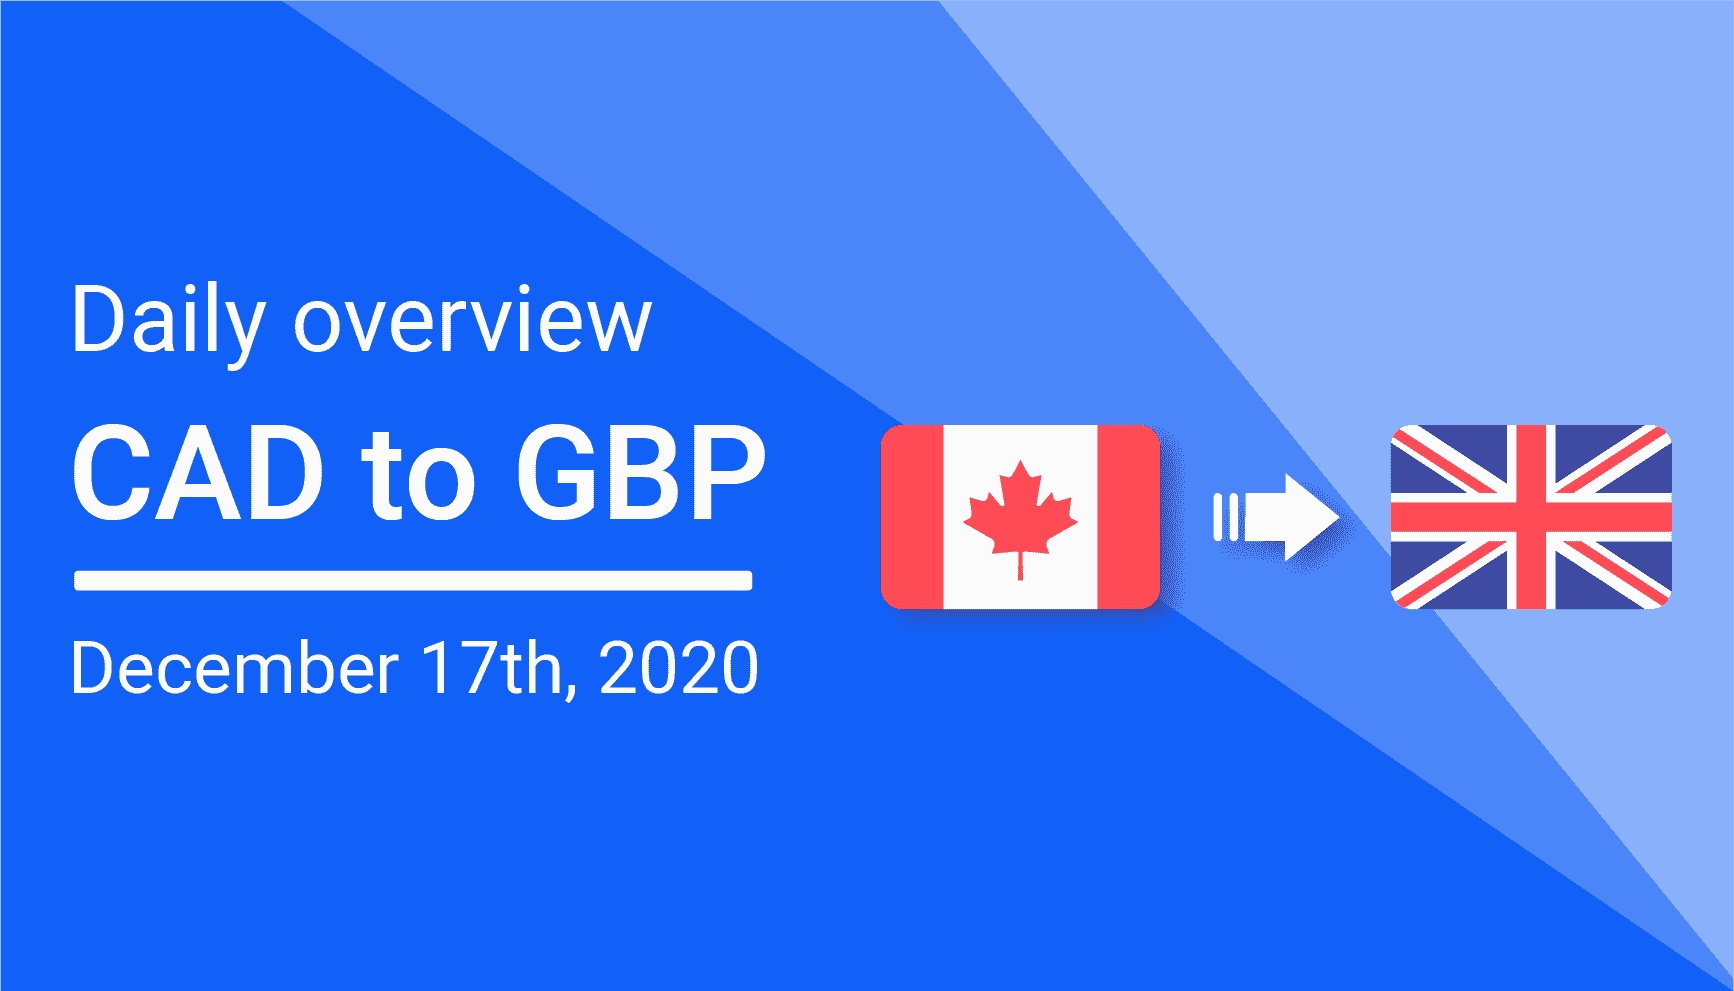 GBP to CAD Daily Overview: December 17th